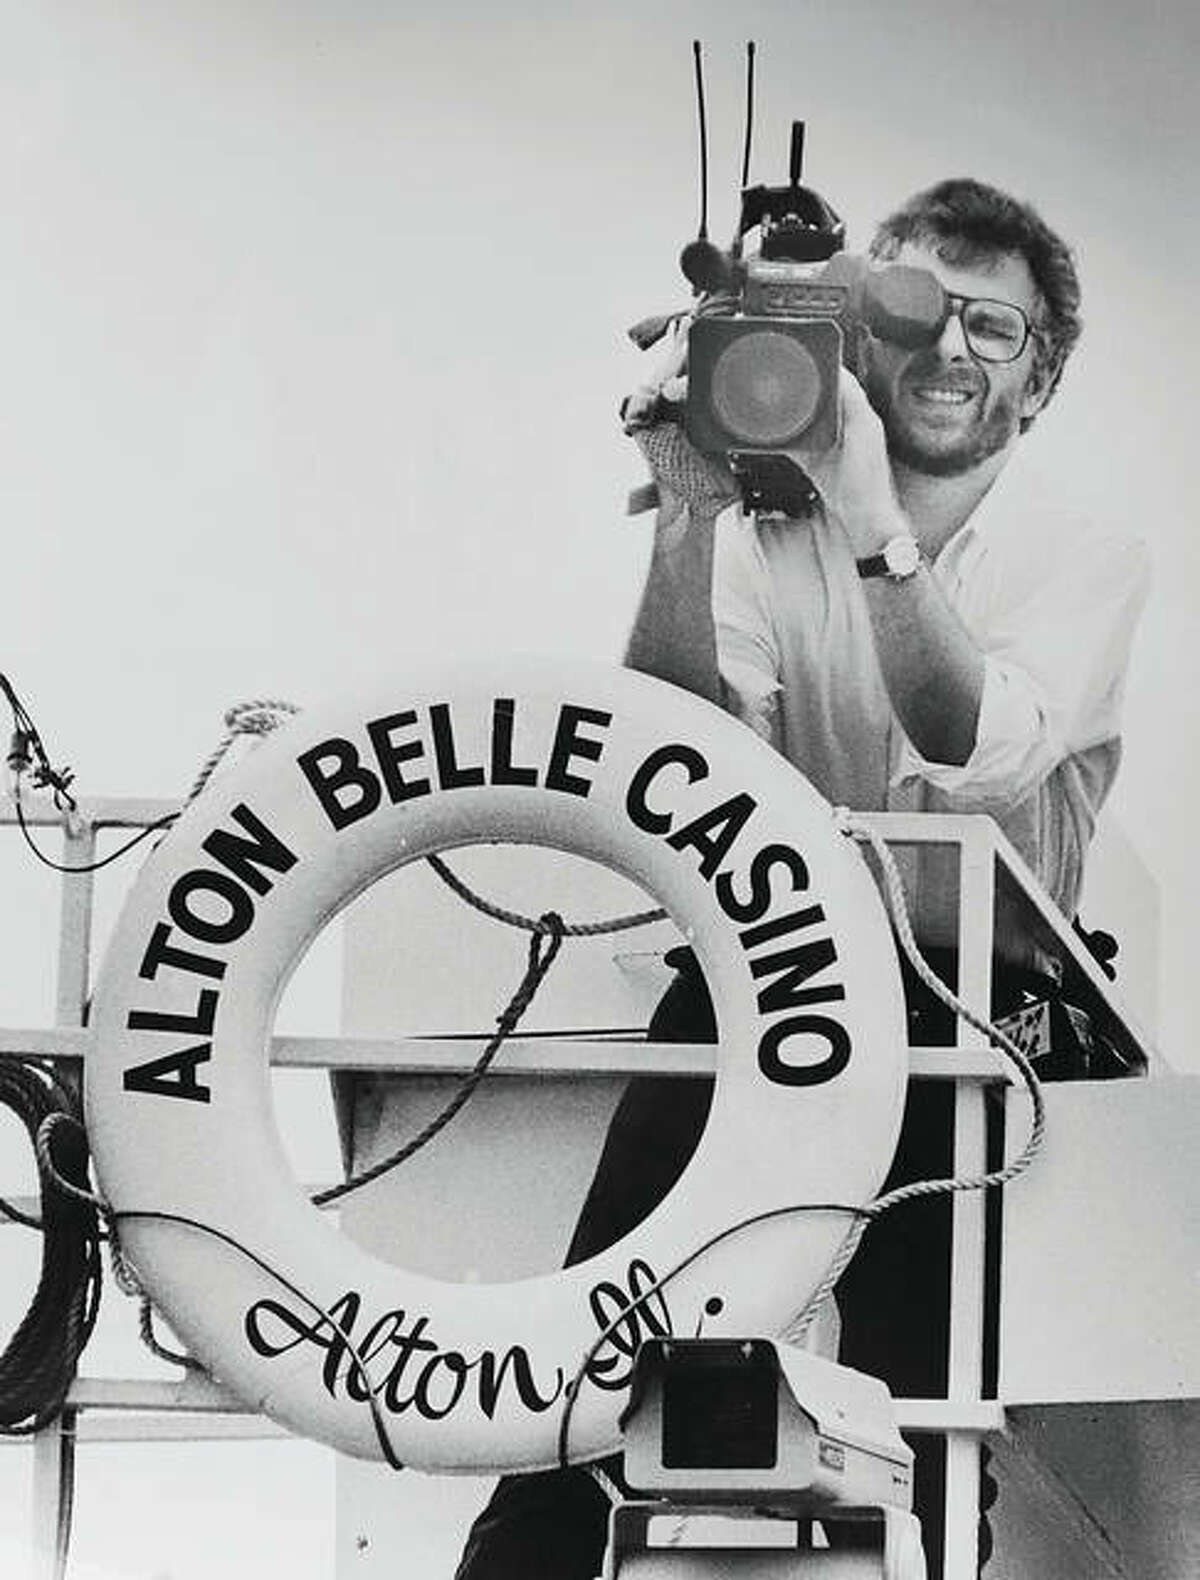 It was a major story for both Illinois and Missouri in 1991 when Alton received the first riverboat gaming license in Illinois. Here, a television cameraman shoots footage of the fuss surrounding the arrival of the Alton Belle Casino.